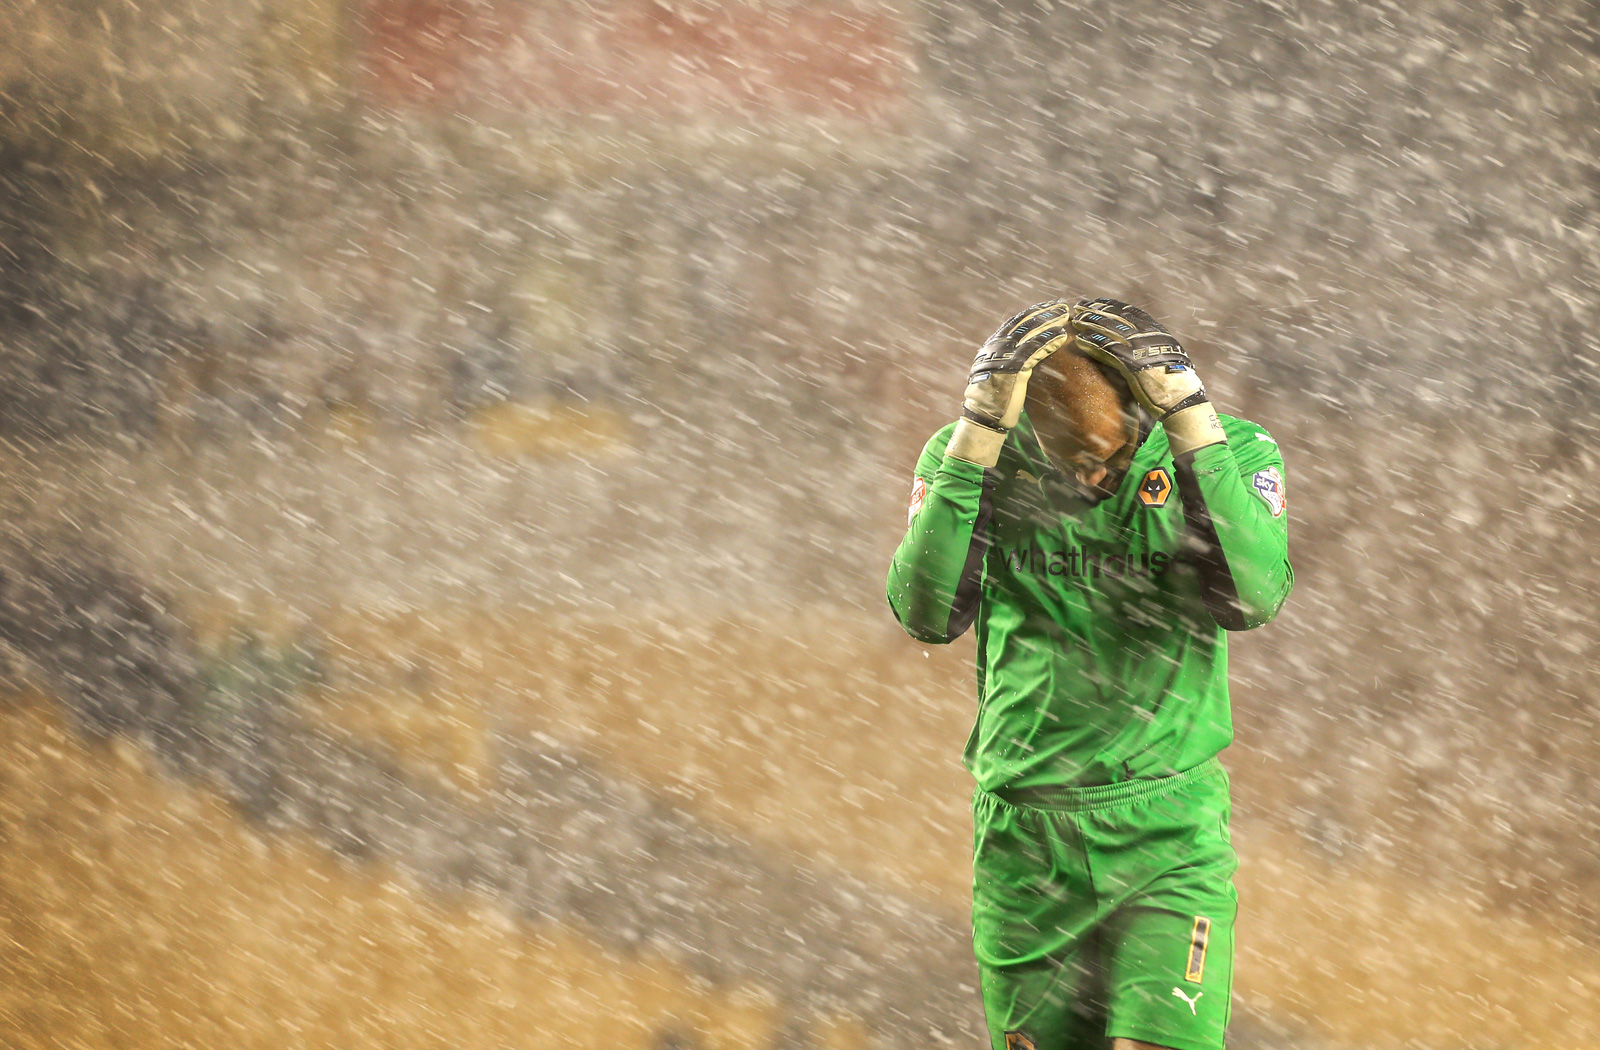 Wolverhampton goalkeeper Carl Ikeme can't stand the elements in an FA Cup replay against Fulham in January 2015.